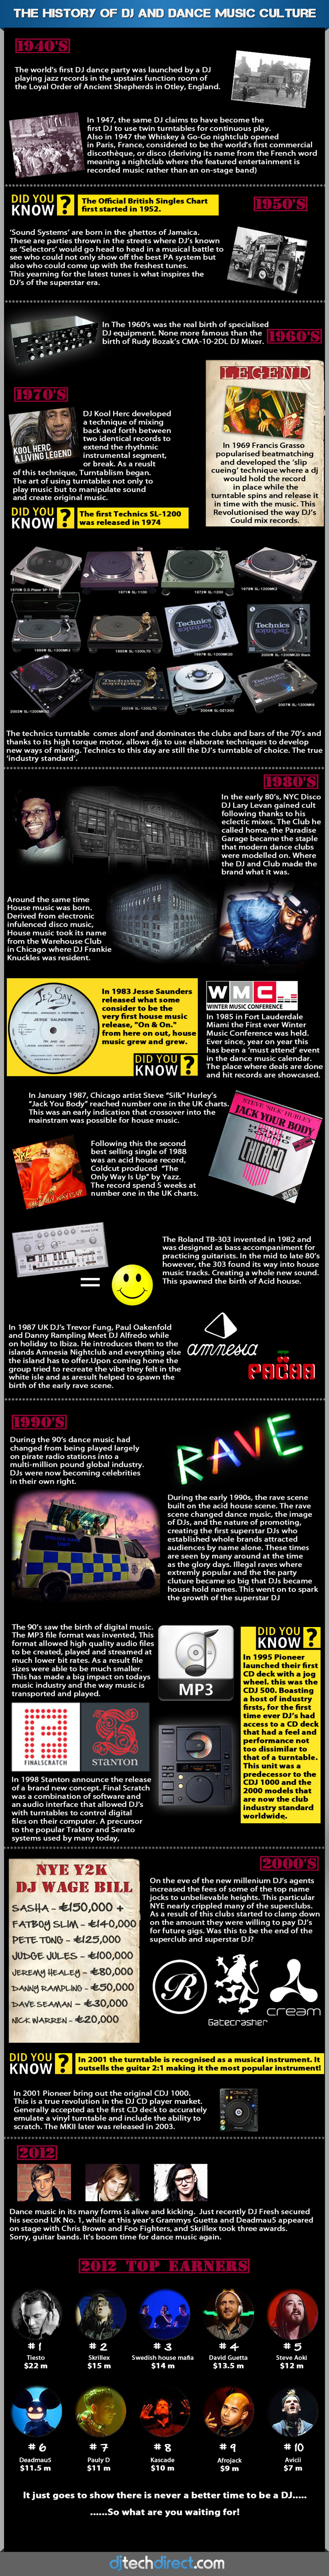 History of the DJ